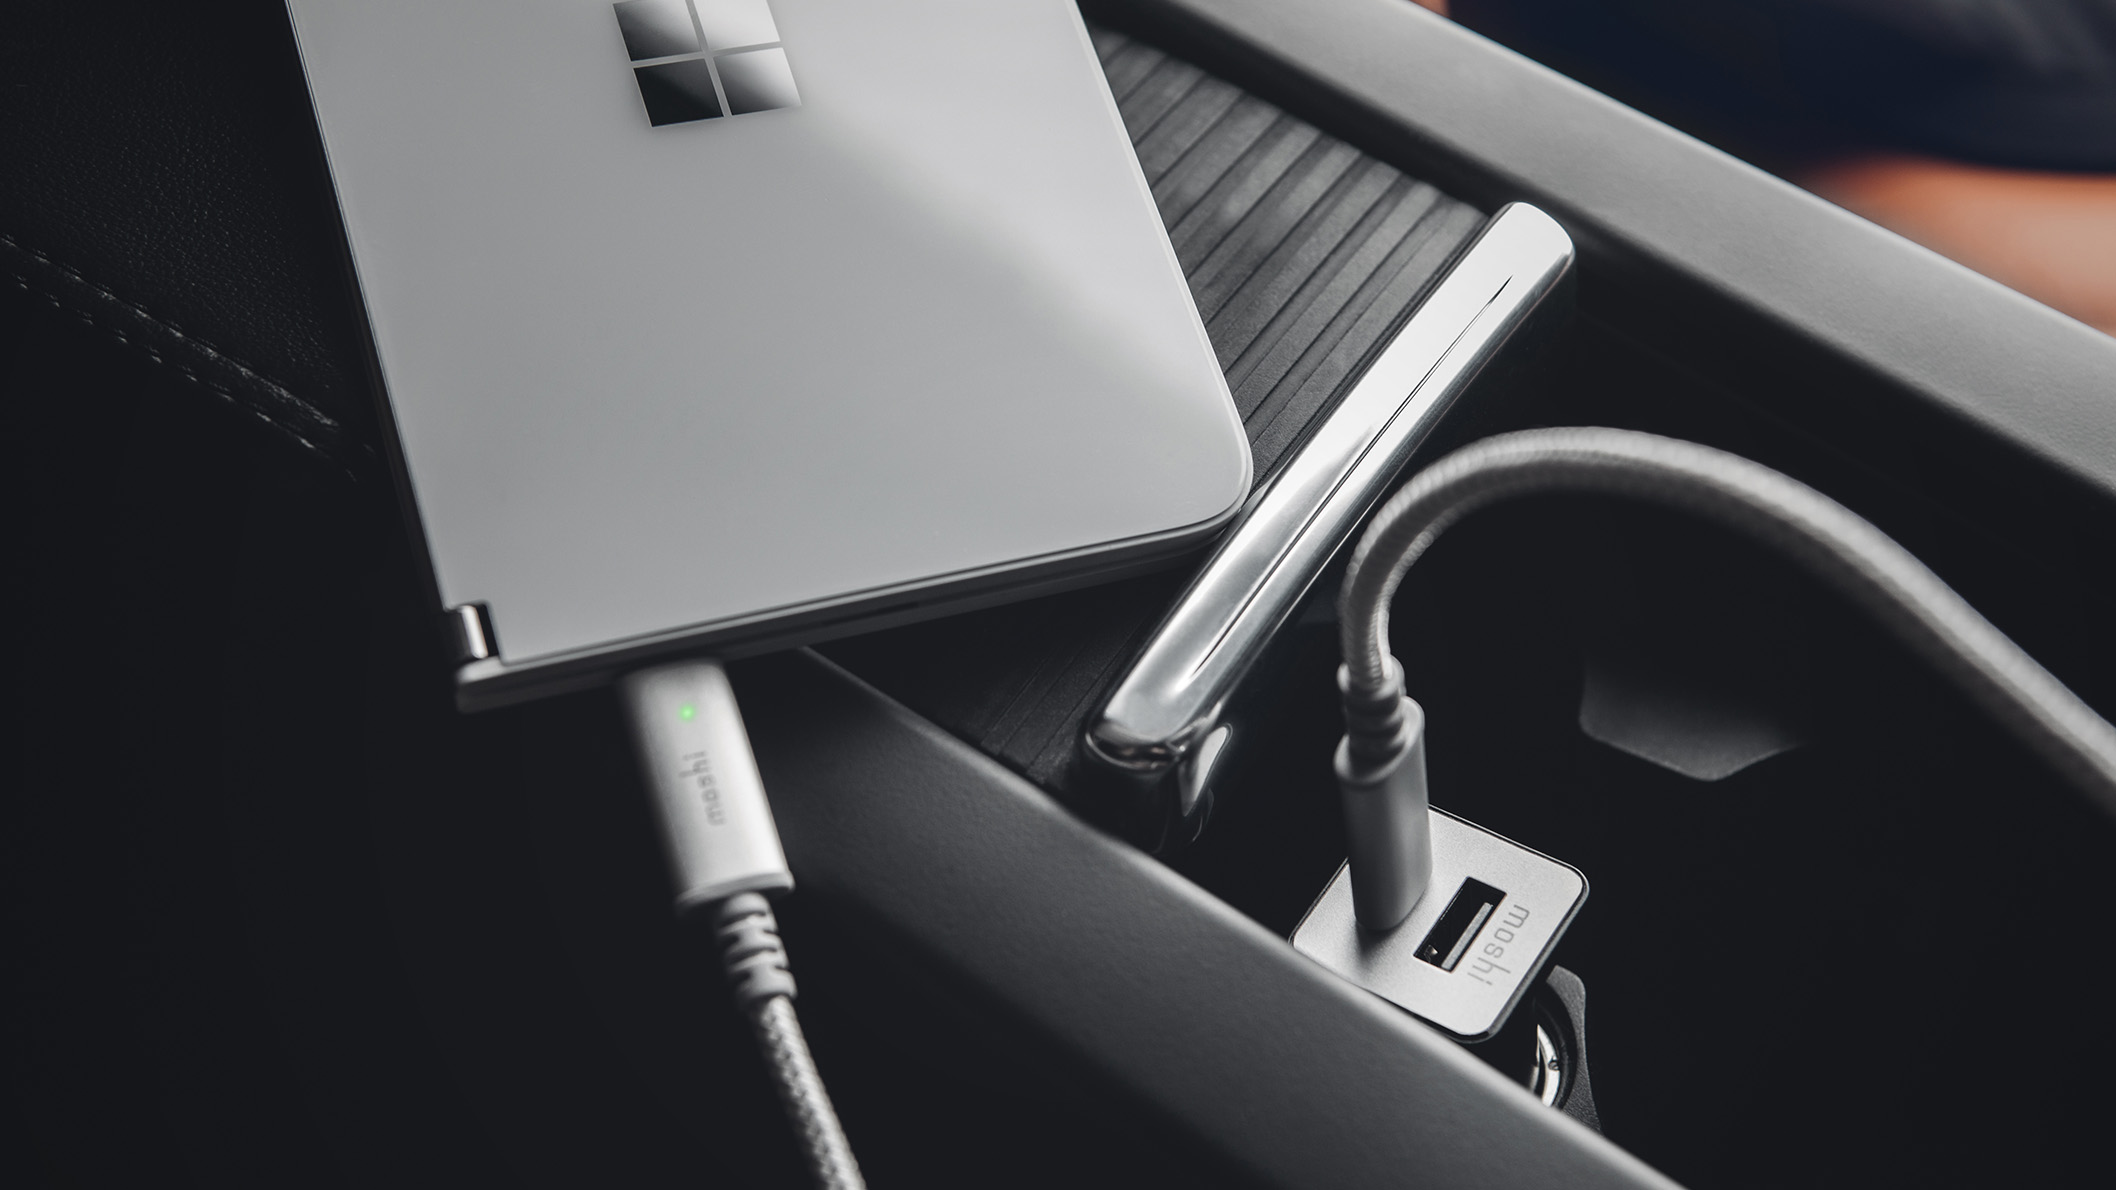 surface duo charger